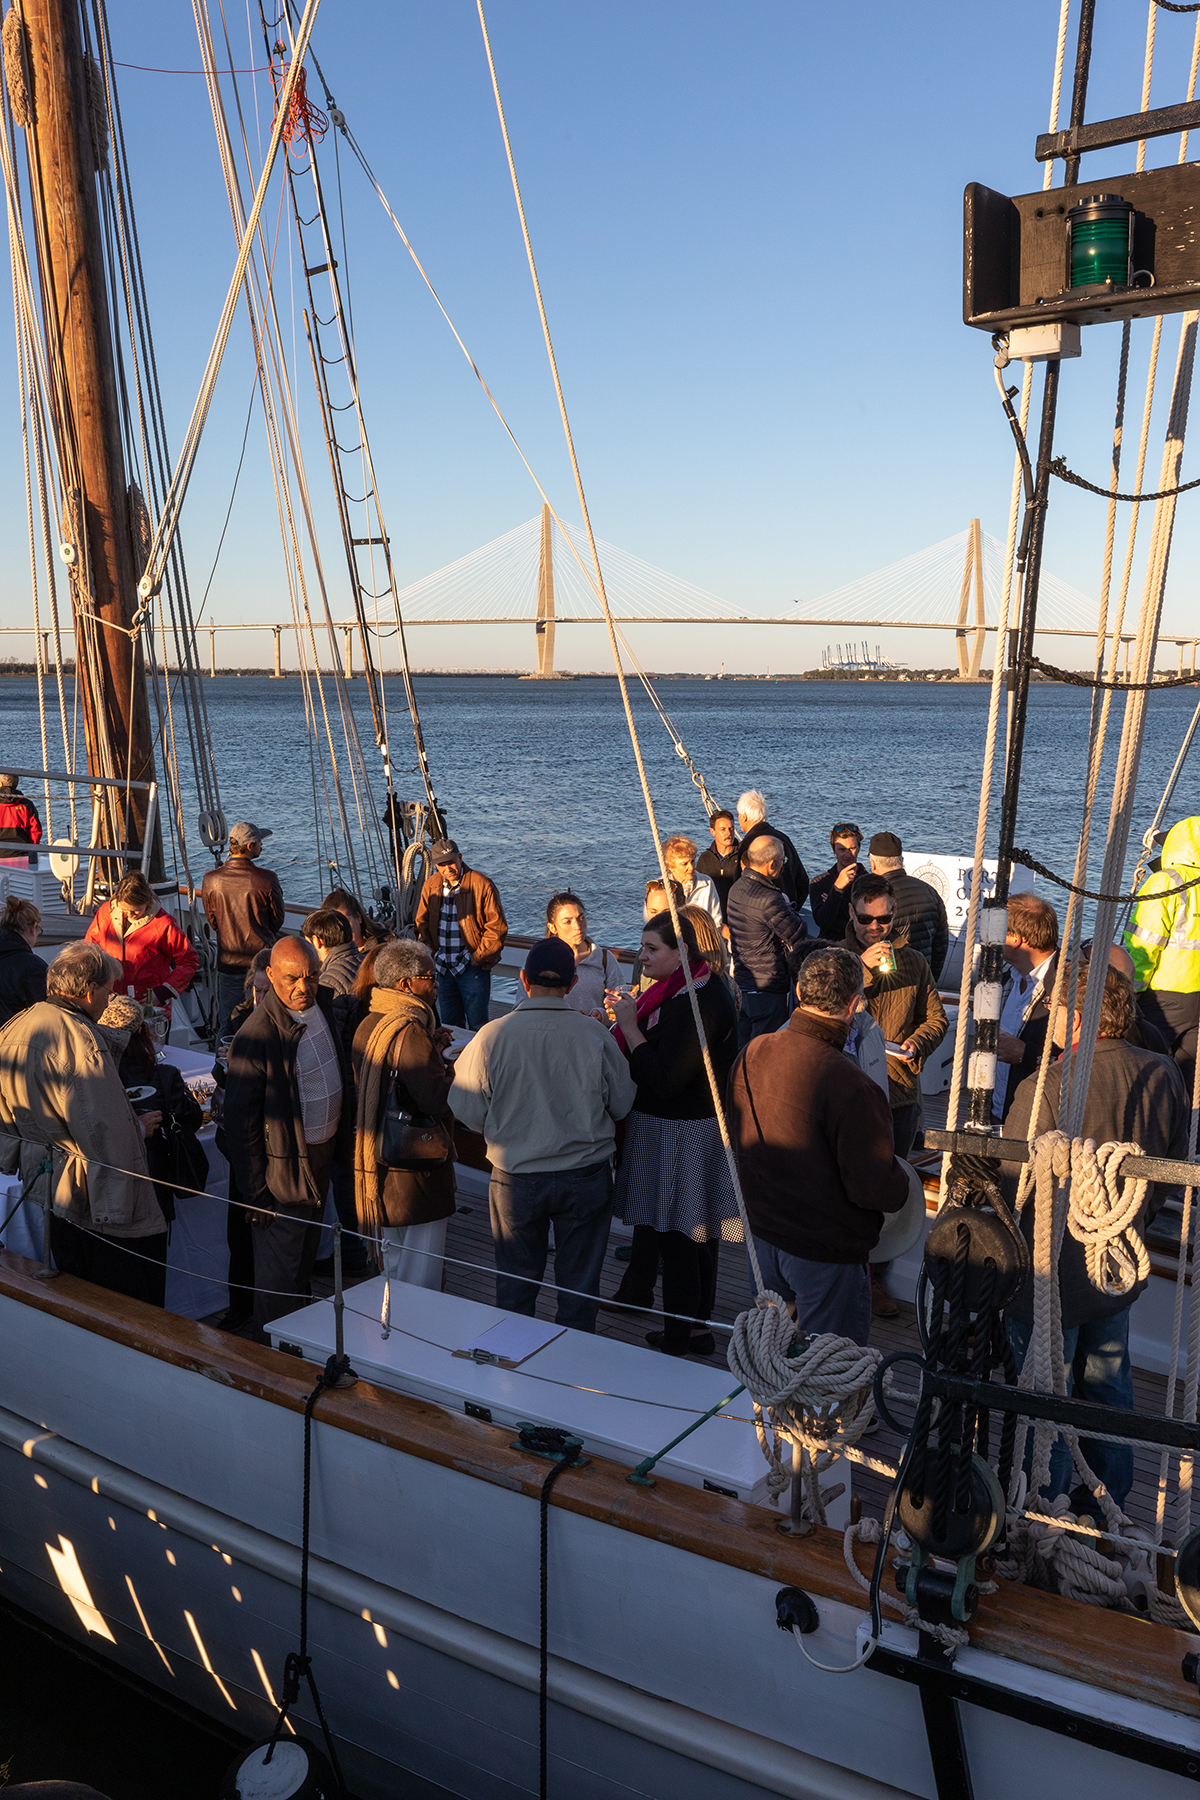 CofC's School of Languages, Cultures and World Affairs hosted the opening reception for is World Affairs Signature Series for Spring 2020 on Sea Life: Ships, Culture, and the History of Global Waterways aboard the tall ship the Spirit of South Carolina on Friday, Feb 7, 2020.